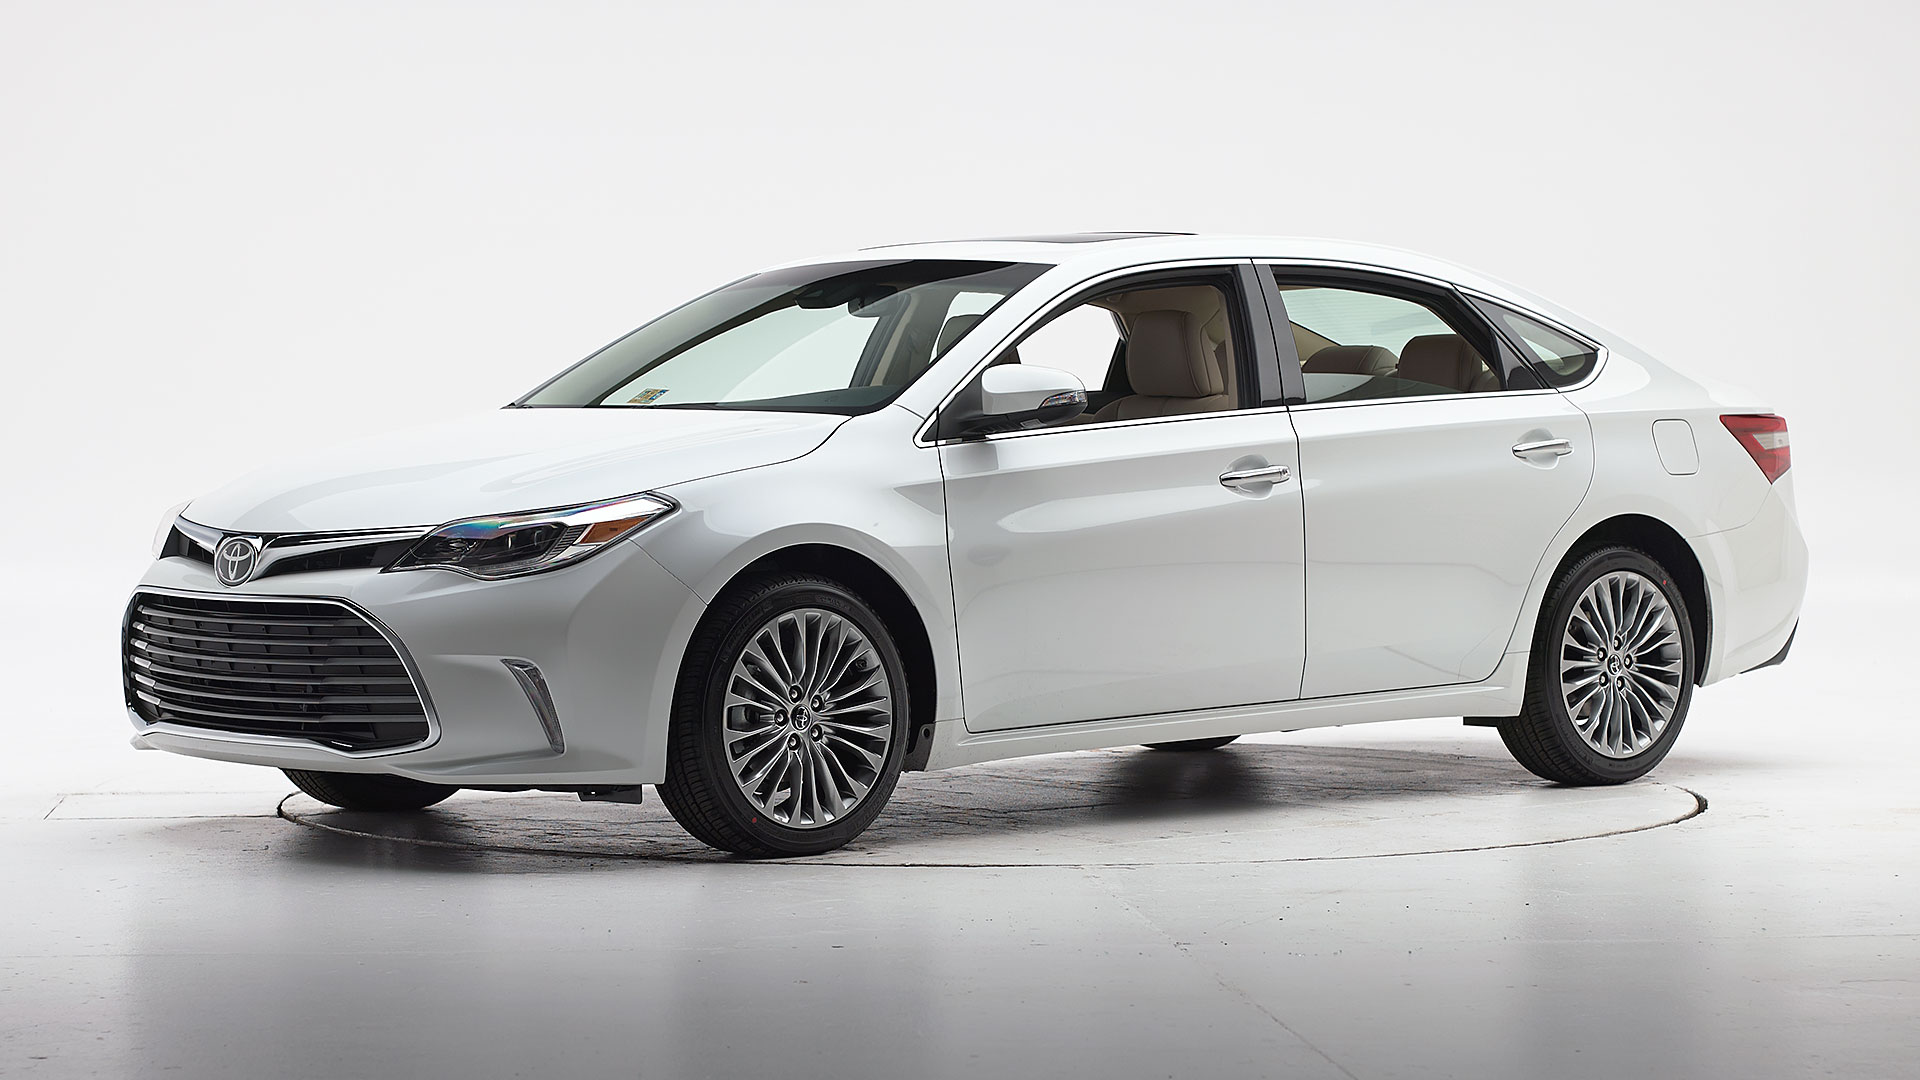 2018 Toyota Avalon 4-door sedan